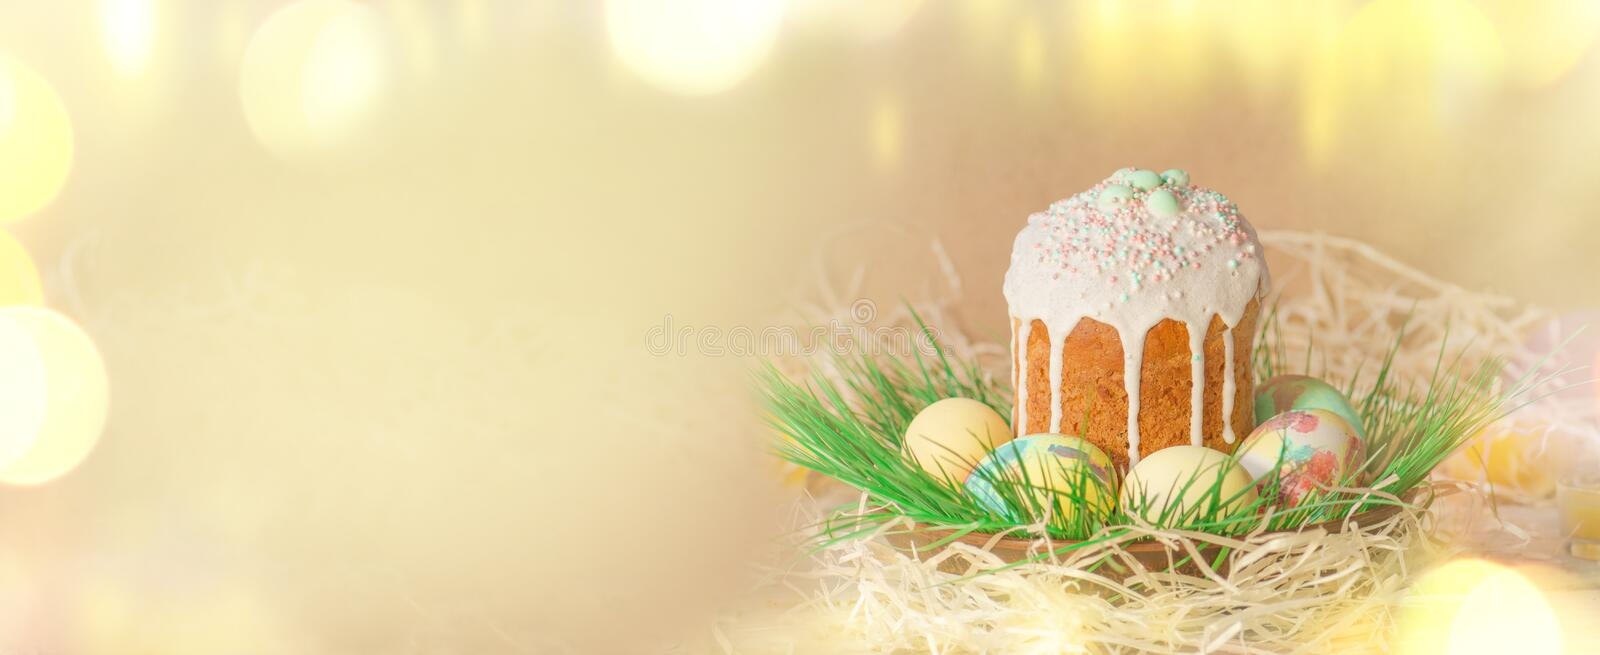 Easter banner with Easter eggs royalty free stock image